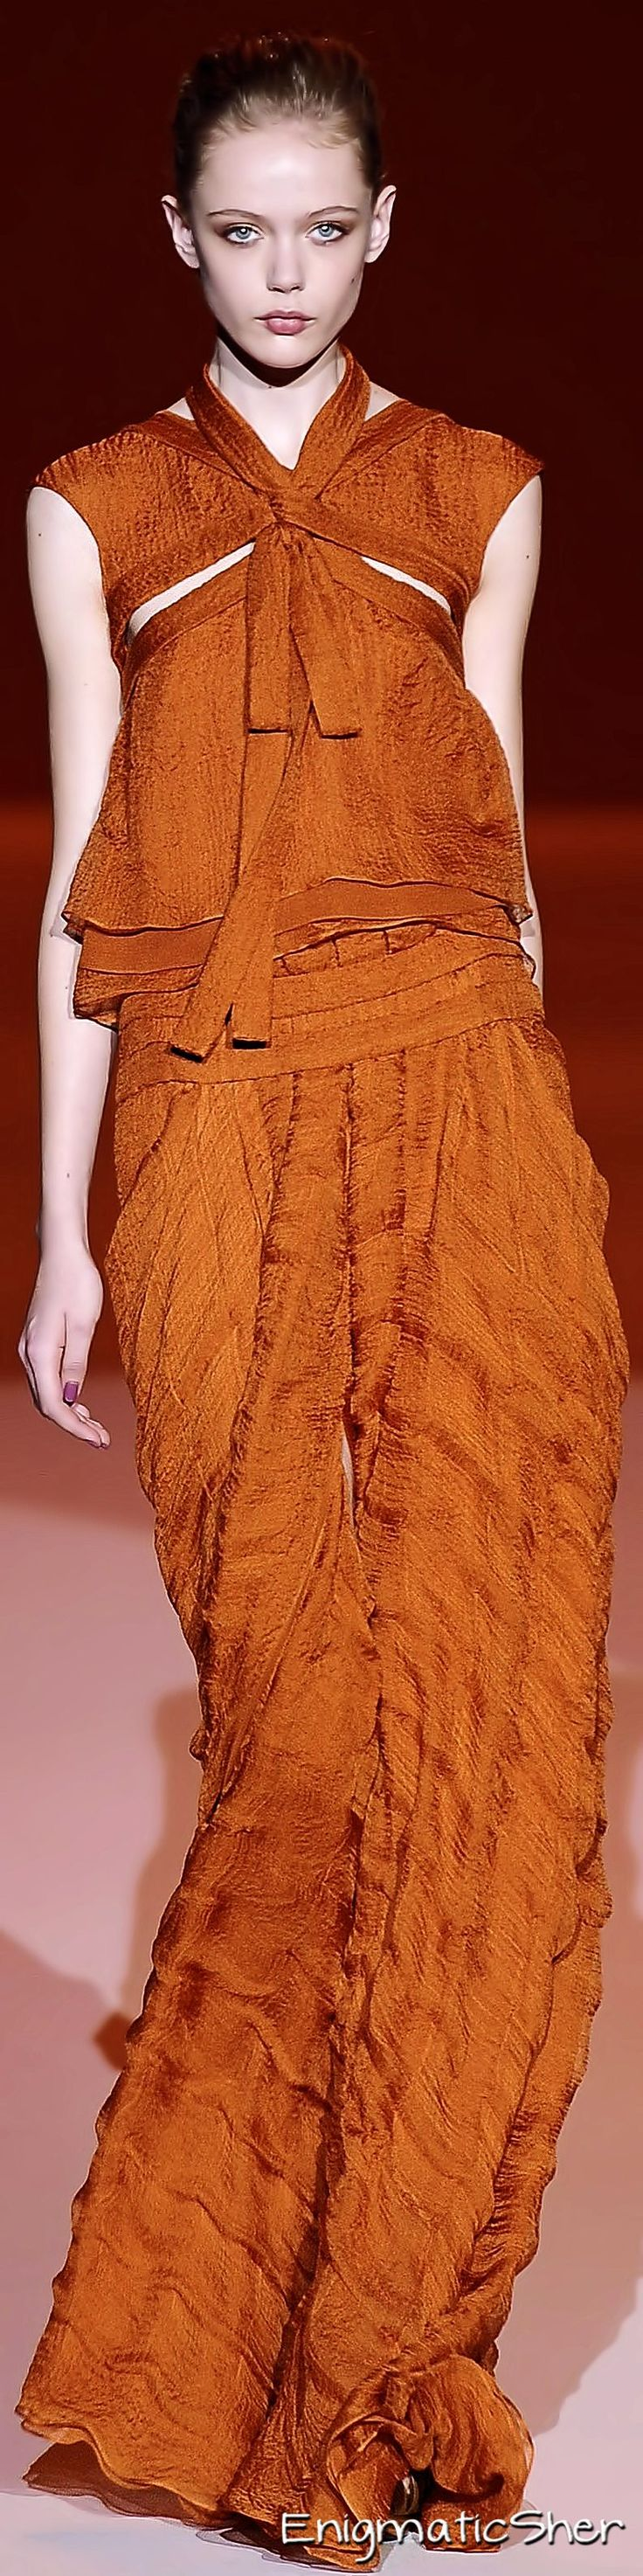 www.2locos.com Carolina Herrera Spring Summer 2010 Ready-To-Wear